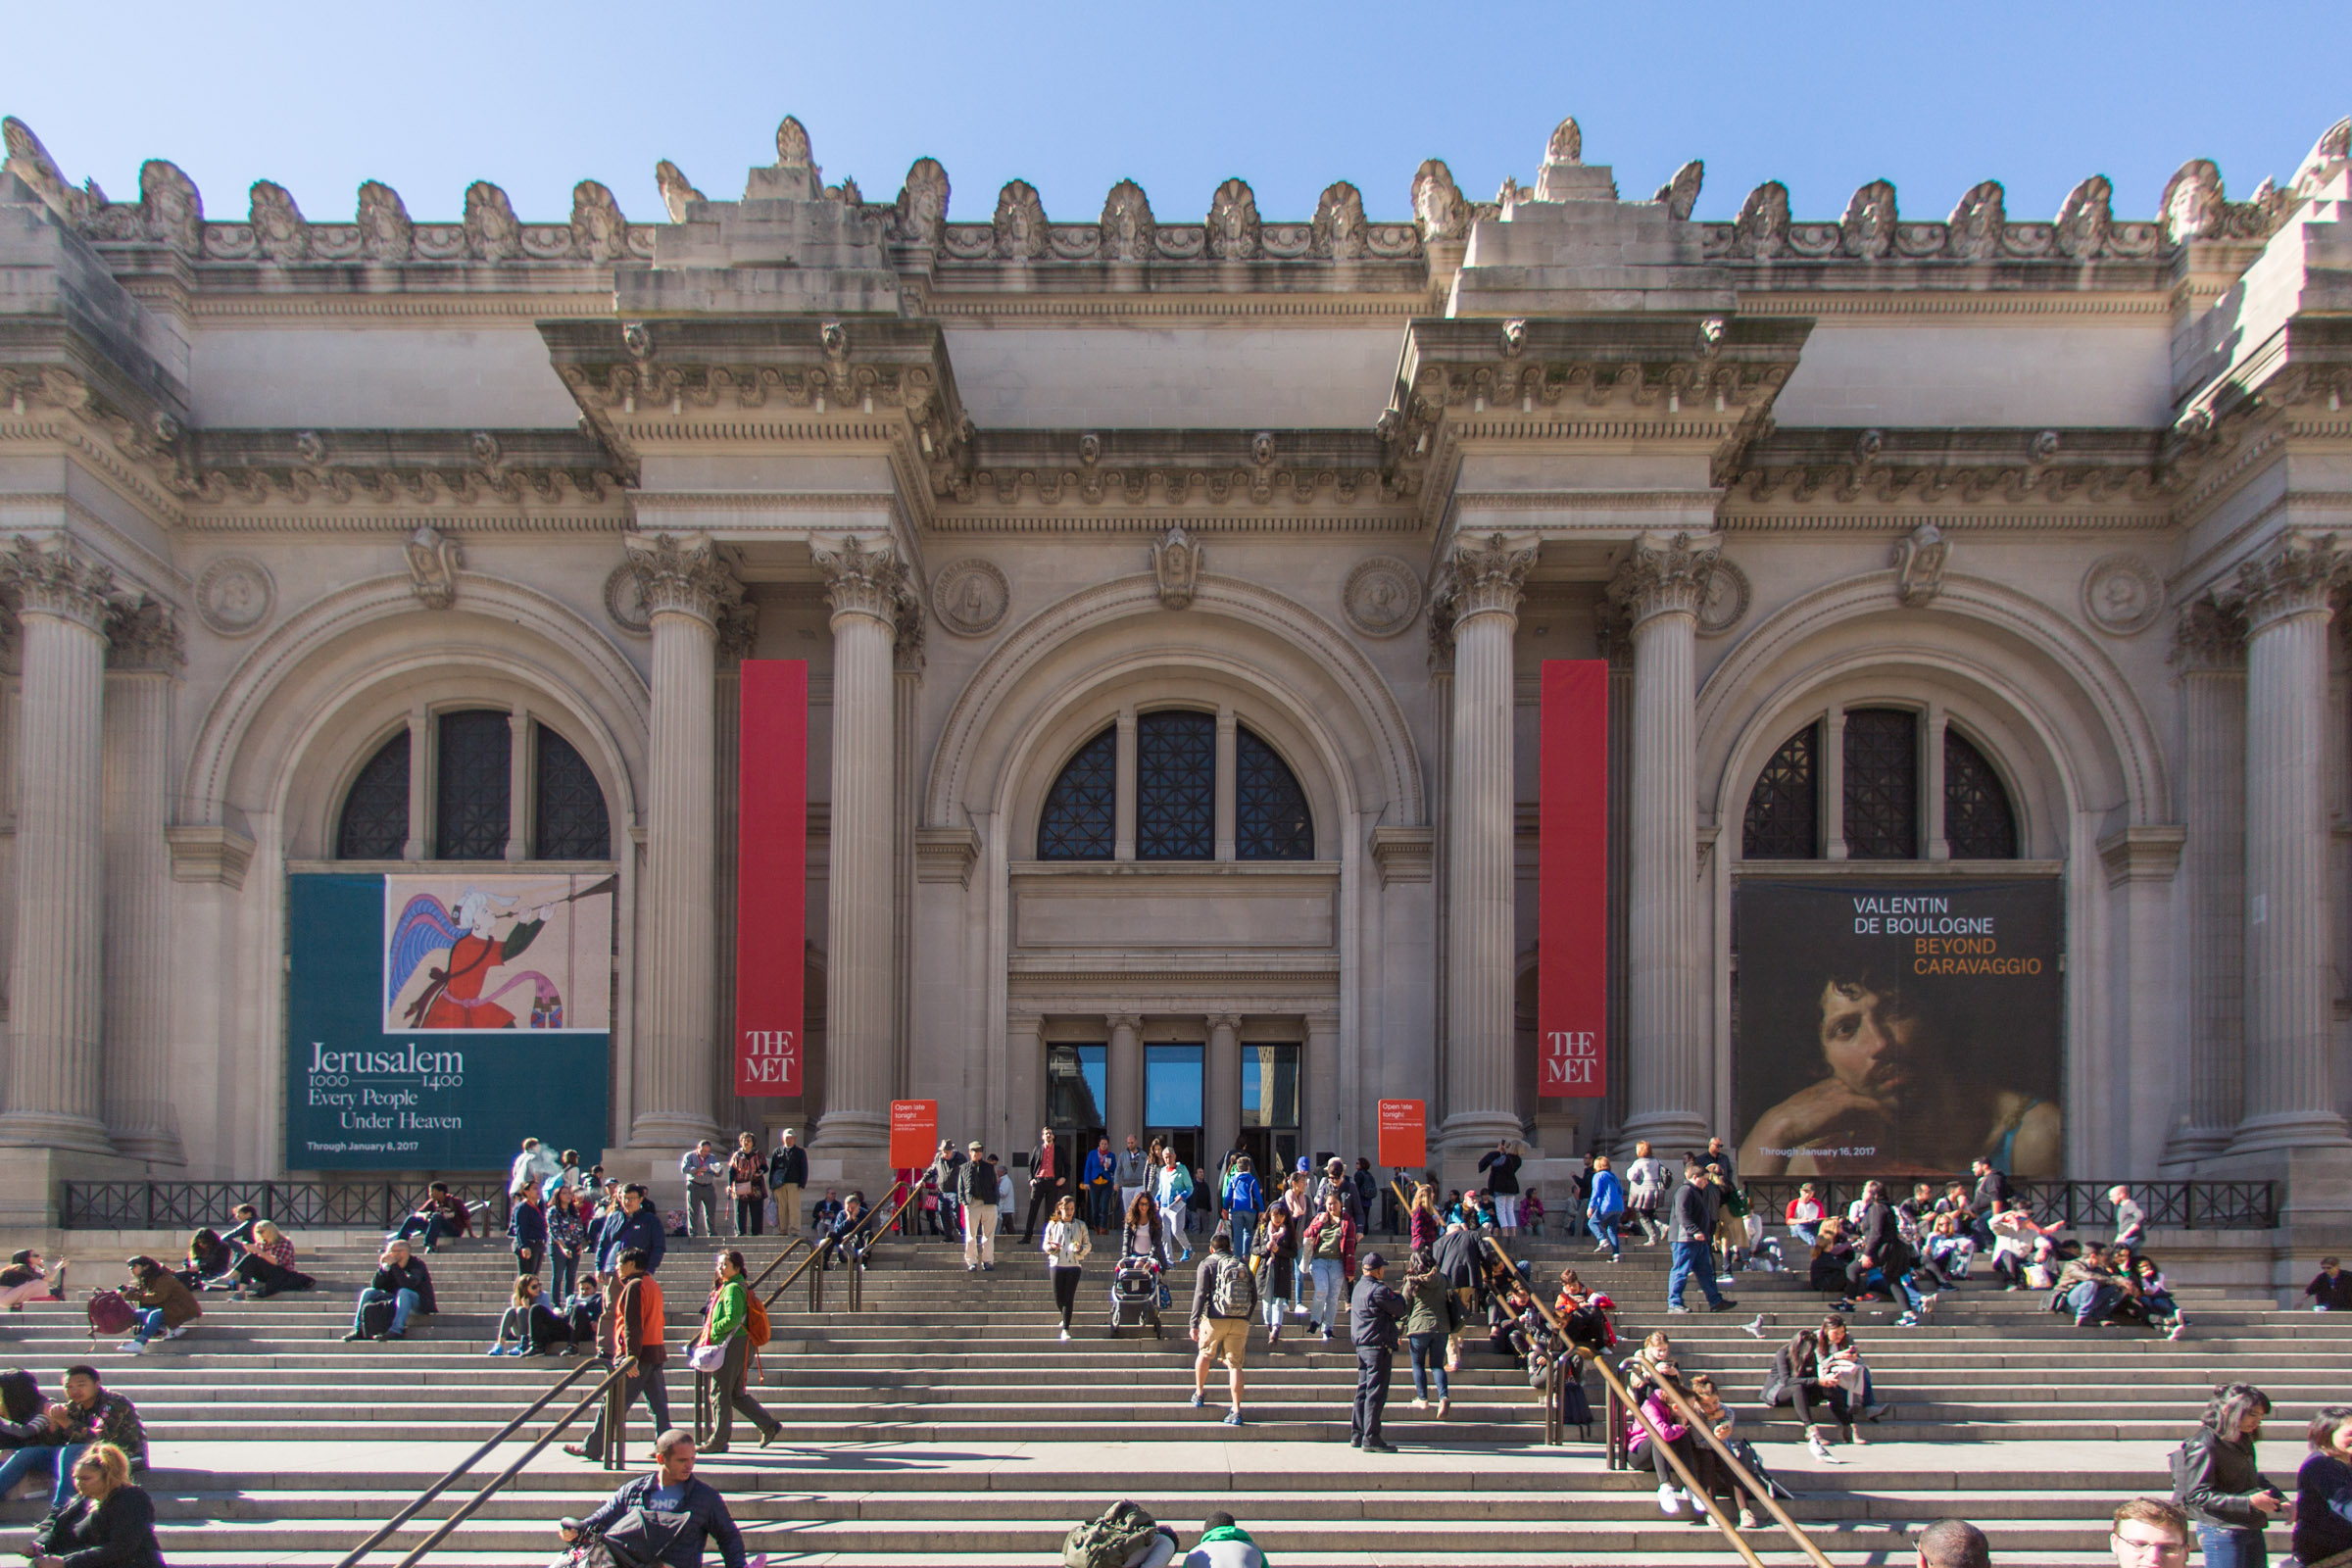 6 Contemporary Museums Set To Reopen This Fall (2) contemporary museum 6 Contemporary Museums Set To Reopen This Fall 6 Contemporary Museums Set To Reopen This Fall 2